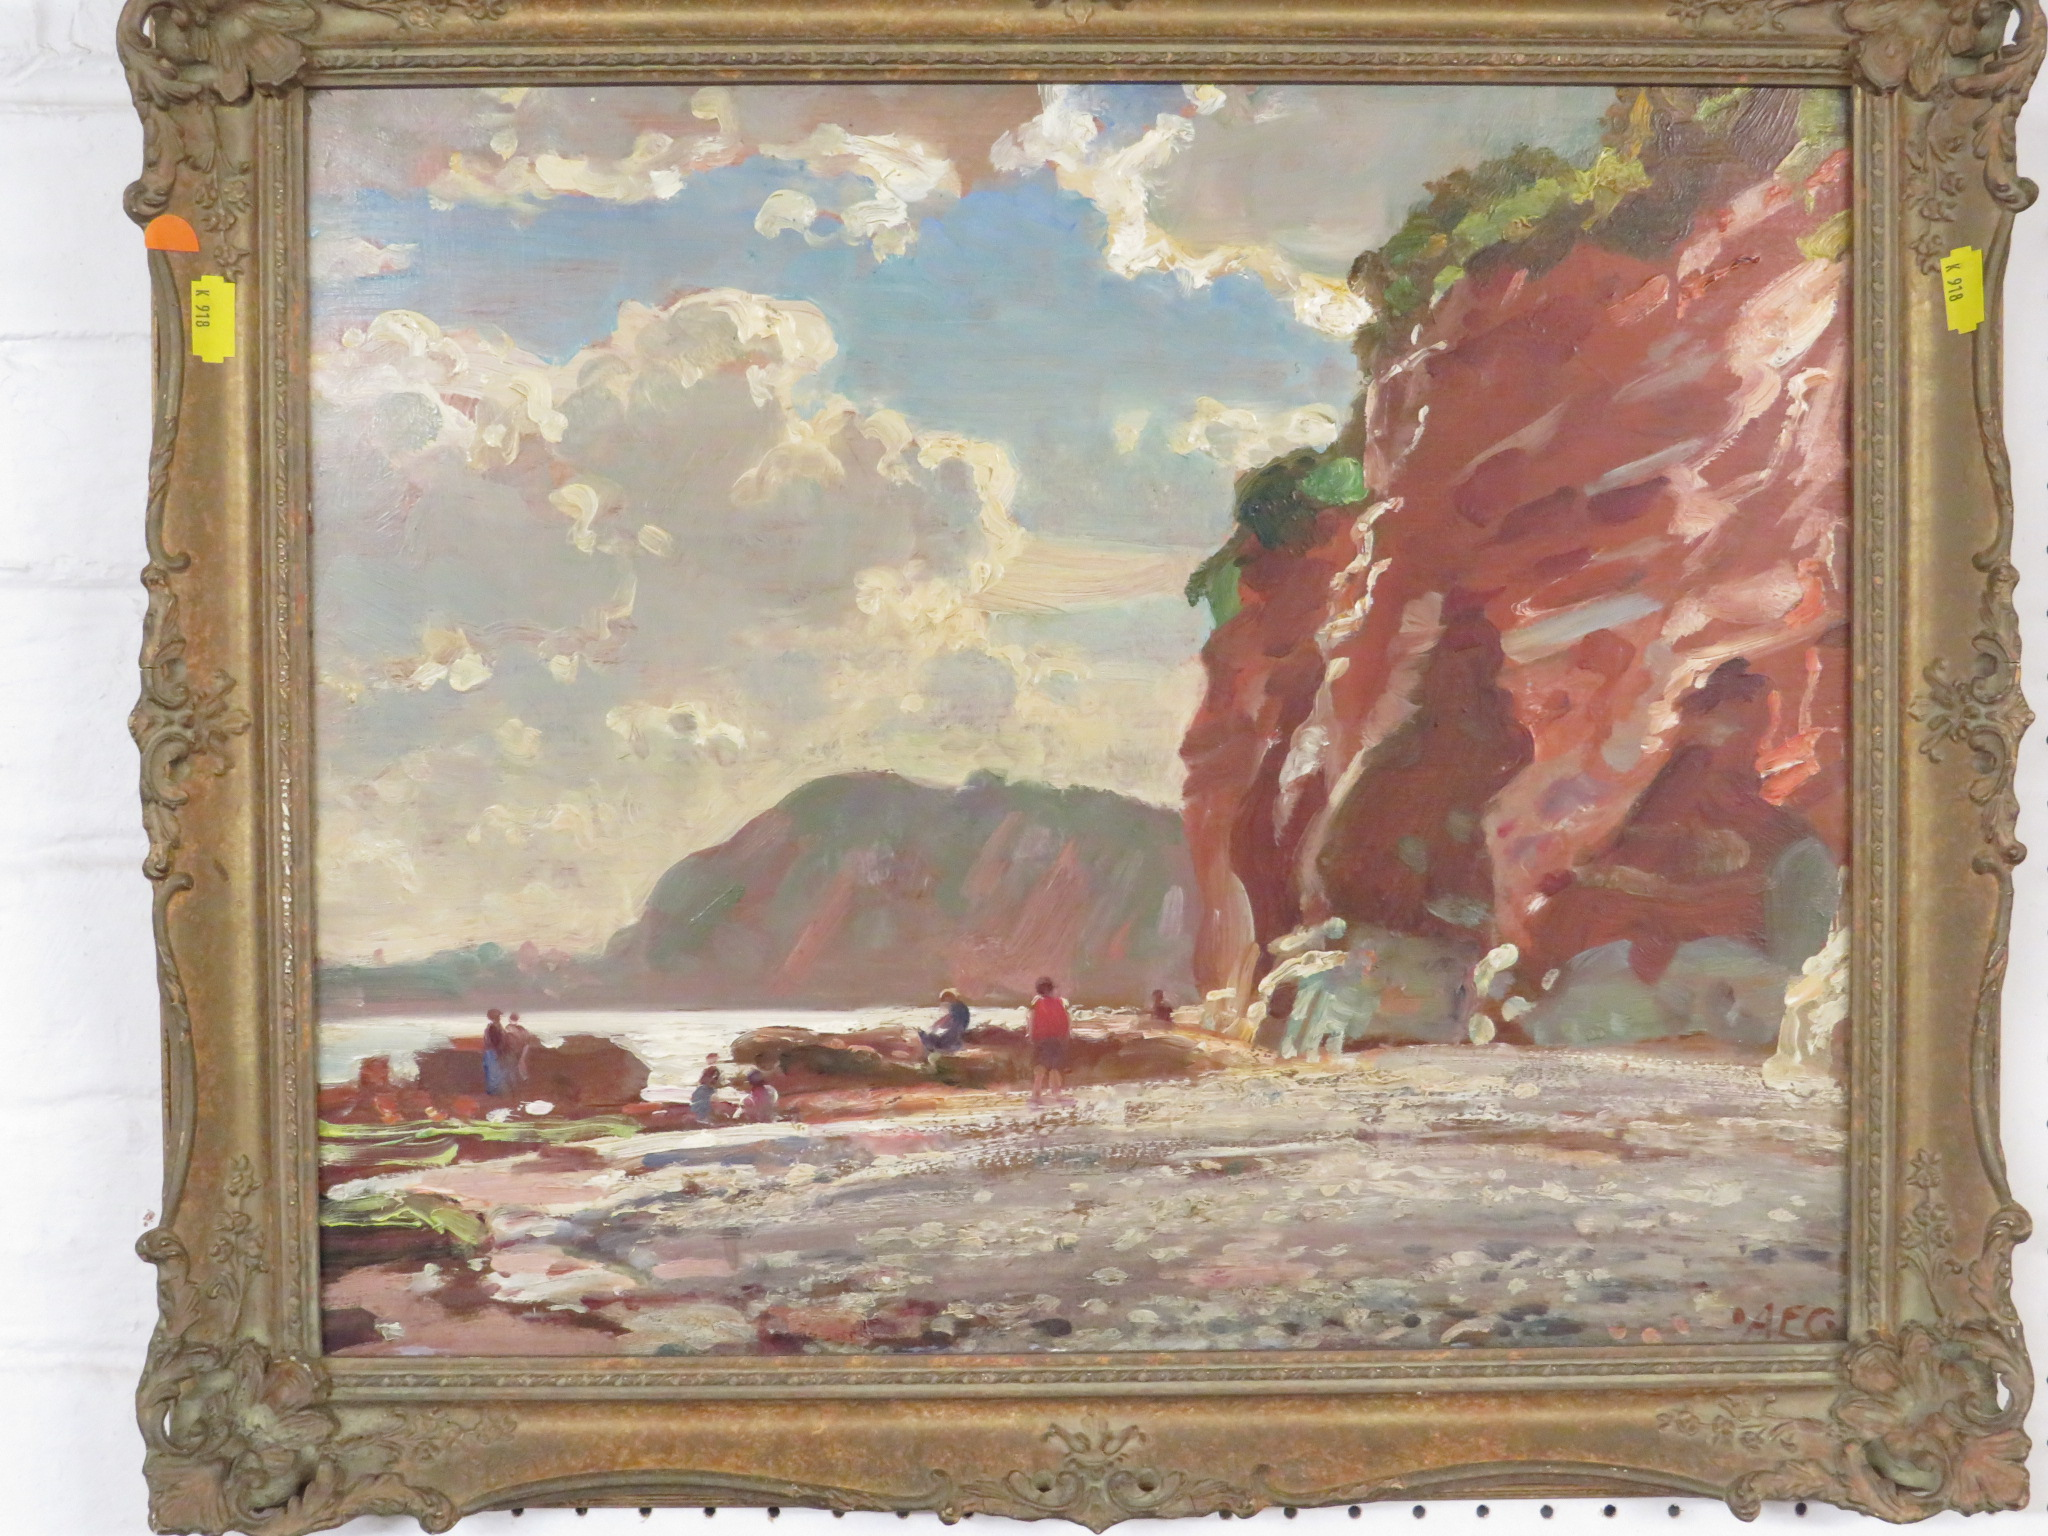 Lot 2 - Sidmouth beach with figures, Chit Rocks, oil on board, initialled AEG lower right, (36.5cm x 44.5cm)